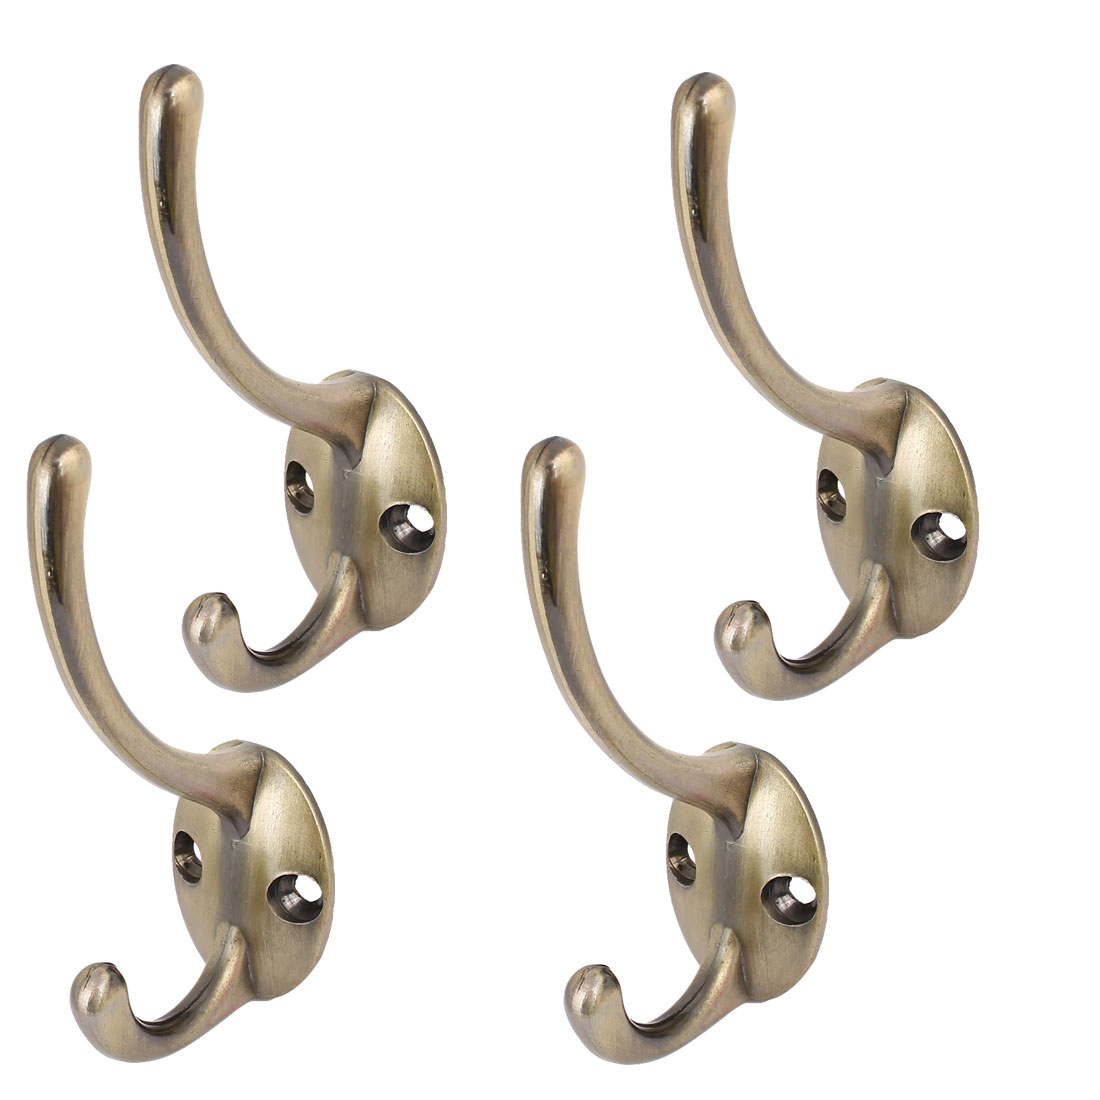 Bedroom Clothes Coat Hanging Retro Style Double Hanger Hooks Bronze Tone 4pcs